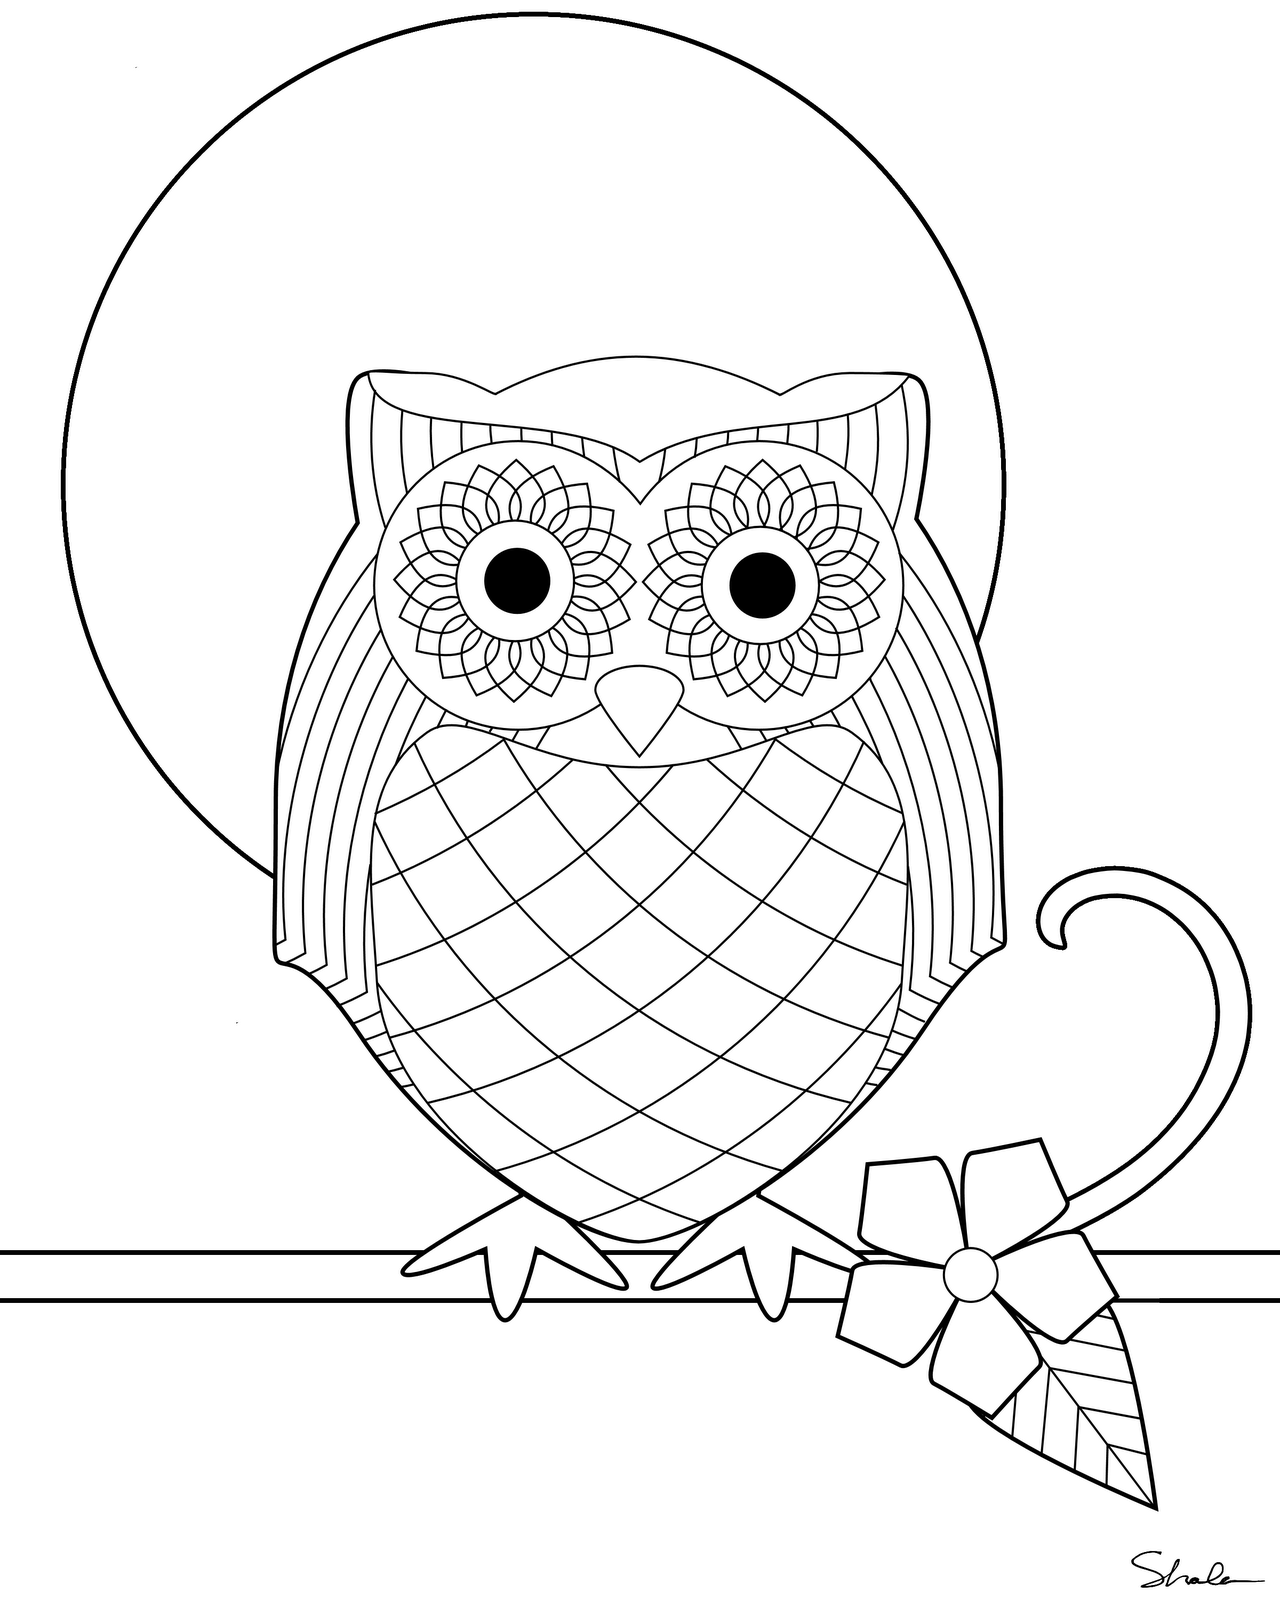 get the latest free owl coloring pictures for free images favorite coloring pages to print online